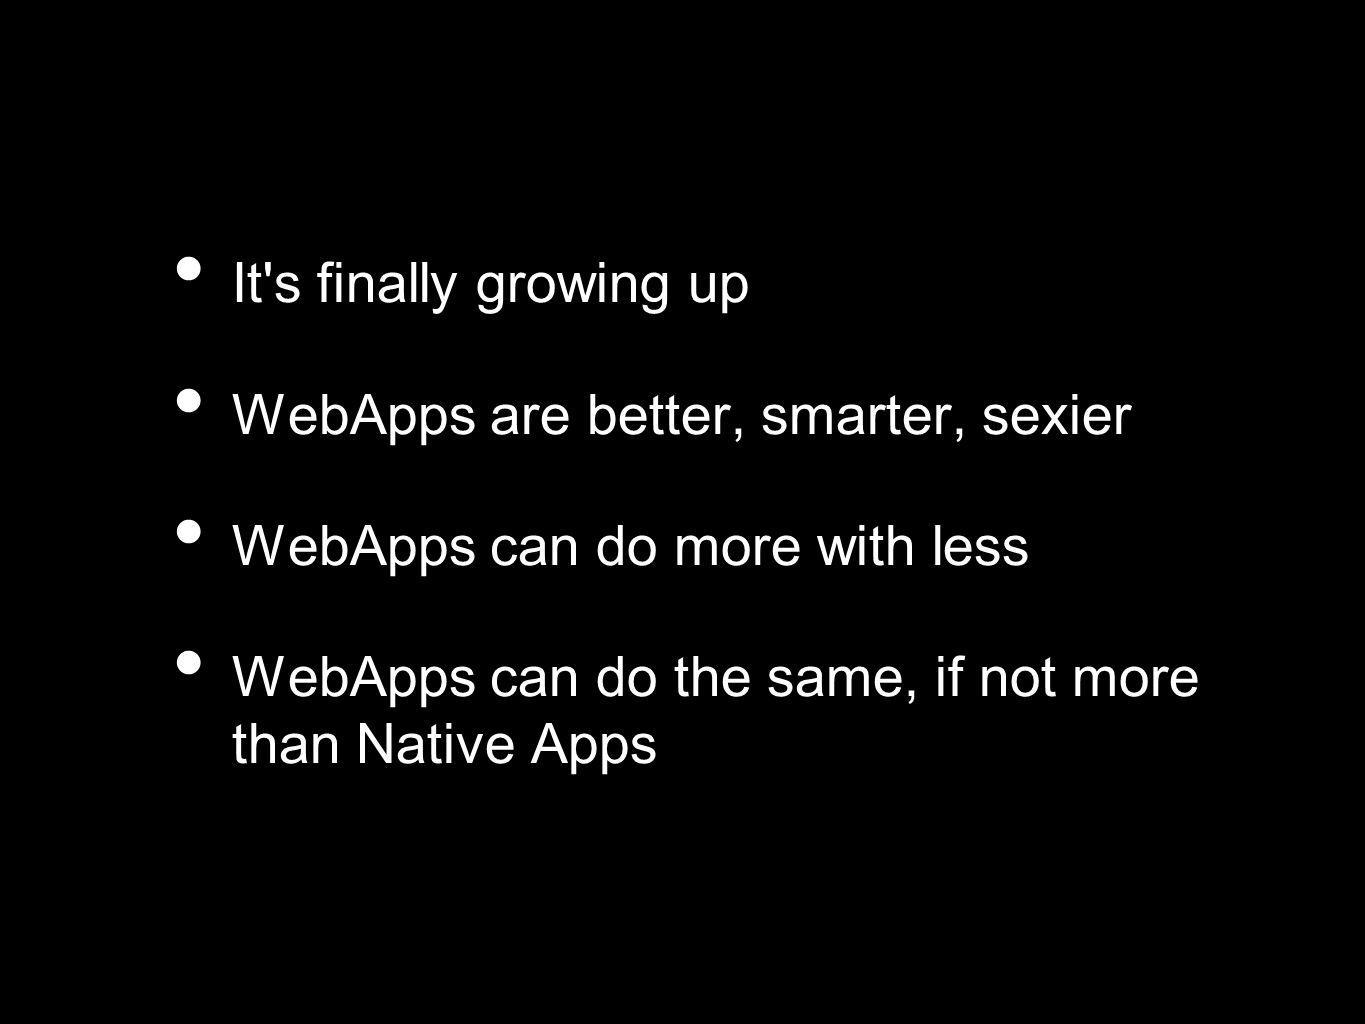 It s finally growing up WebApps are better, smarter, sexier WebApps can do more with less WebApps can do the same, if not more than Native Apps